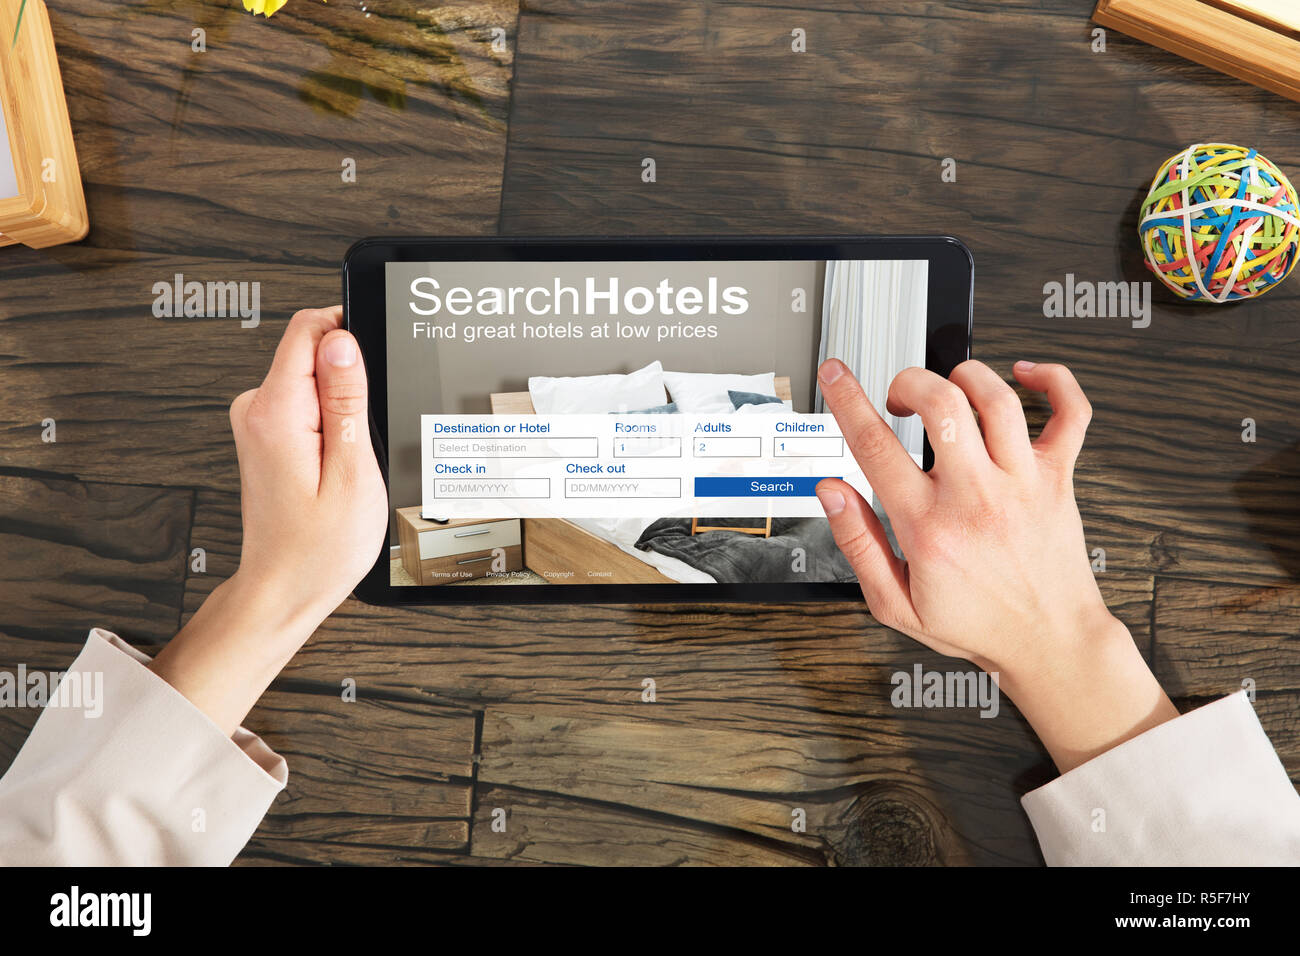 Person Searching Online Low Prices Hotels - Stock Image